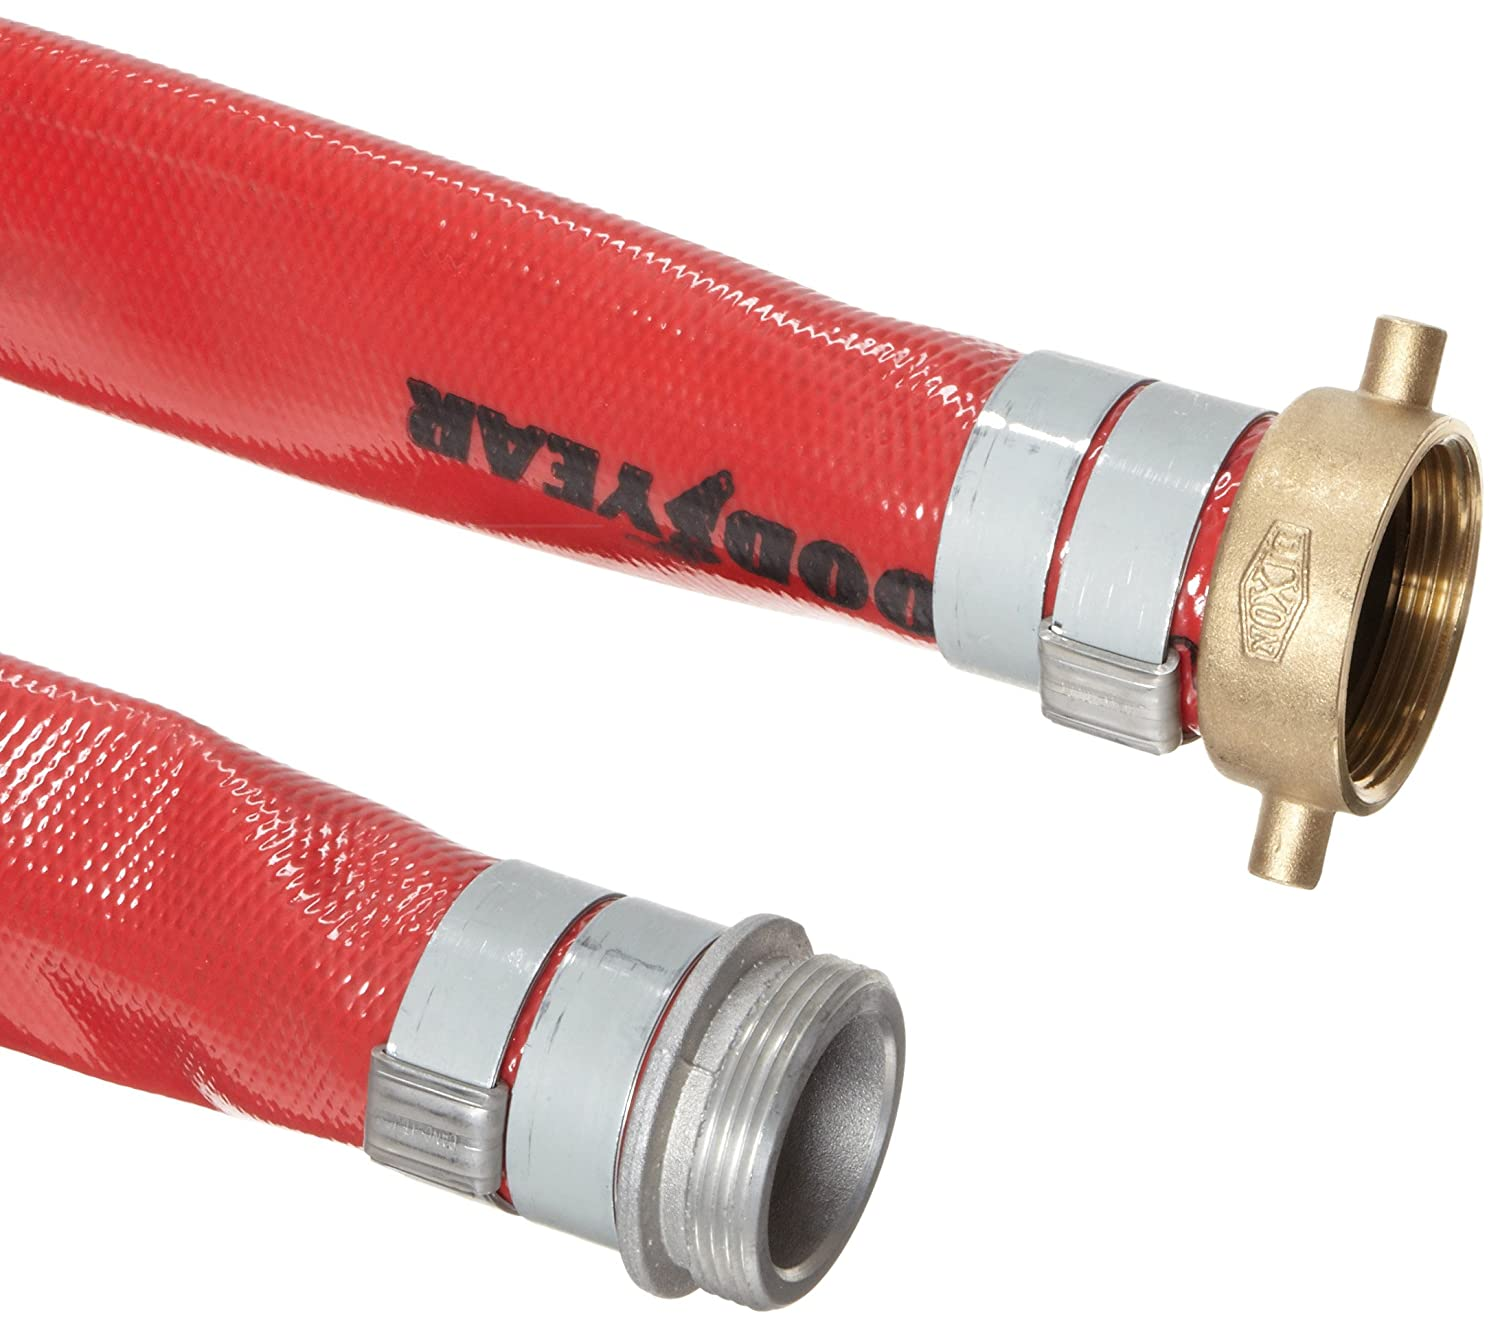 Goodyear EP Spiraflex Red PVC Suction/Discharge Hose Assembly, 3 Aluminum NPSH Male x Brass Female Swivel Connection, 125 PSI Maximum Pressure, 50' Length, 3 ID by Goodyear Engineered Products B0070RV03C